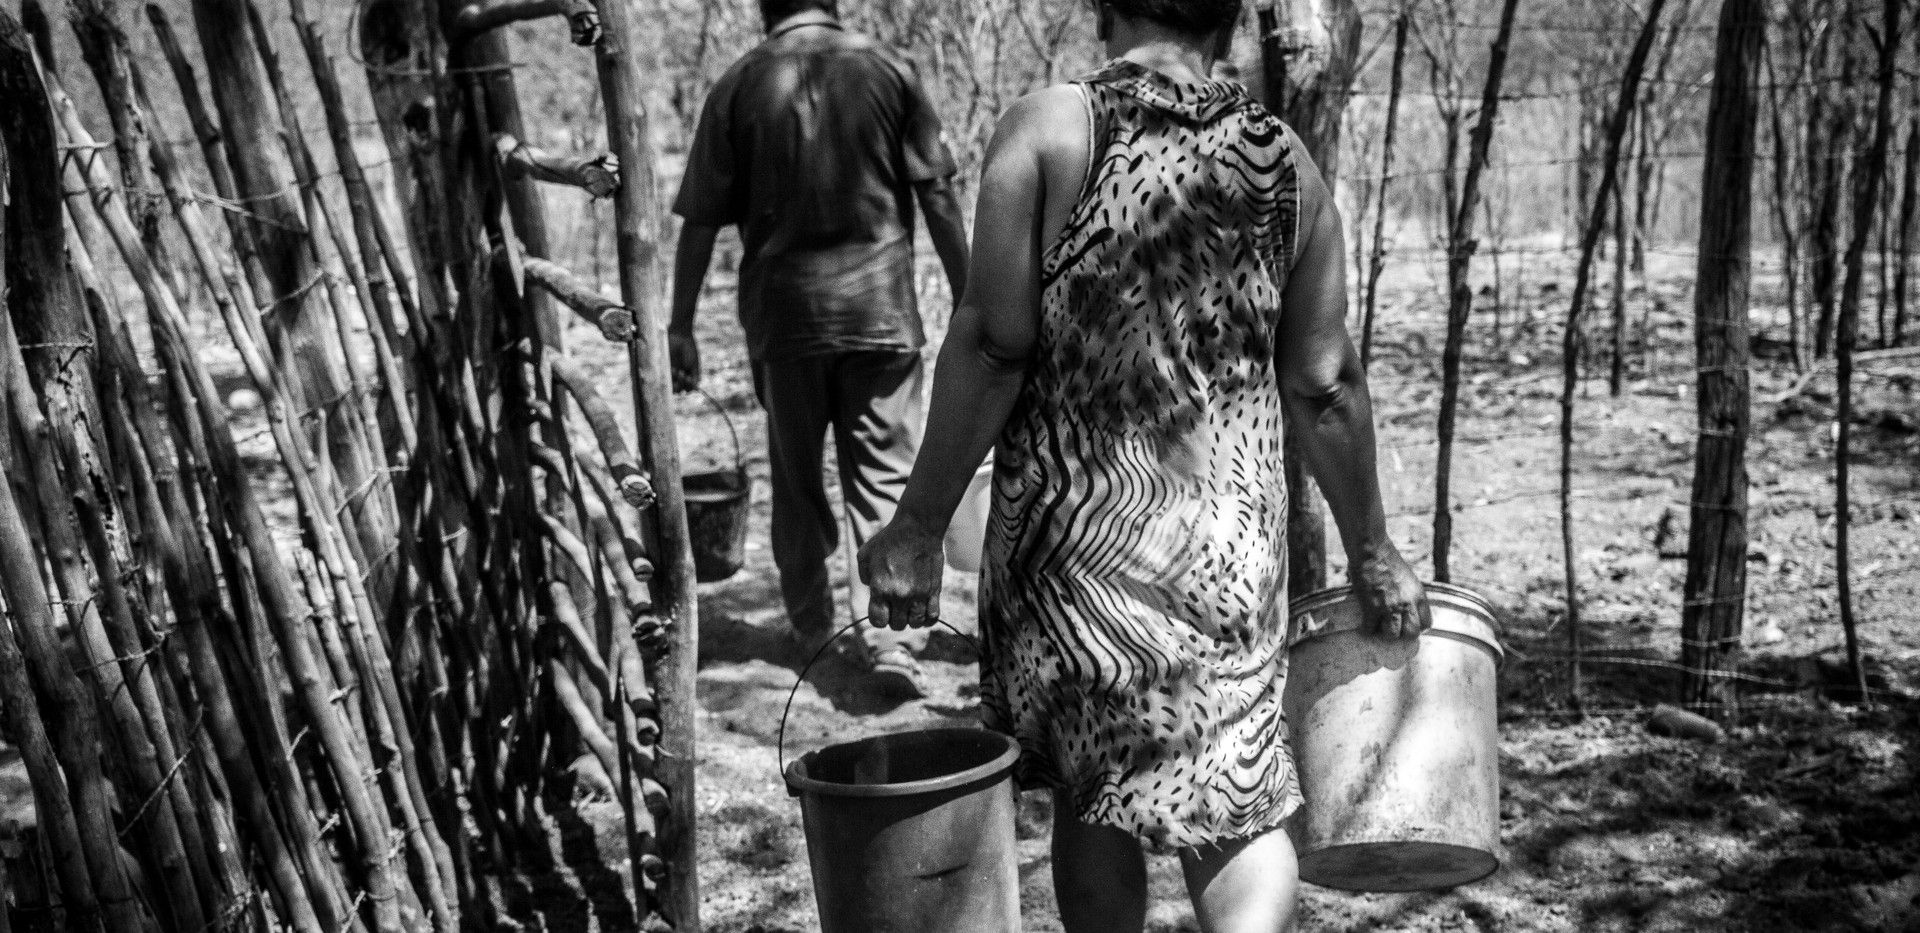 Rosilene de Souza, 46, and her husband Genival Gomes preparing to take water to the pigs at their farm in Sertania, State of Pernambuco, Brazil.